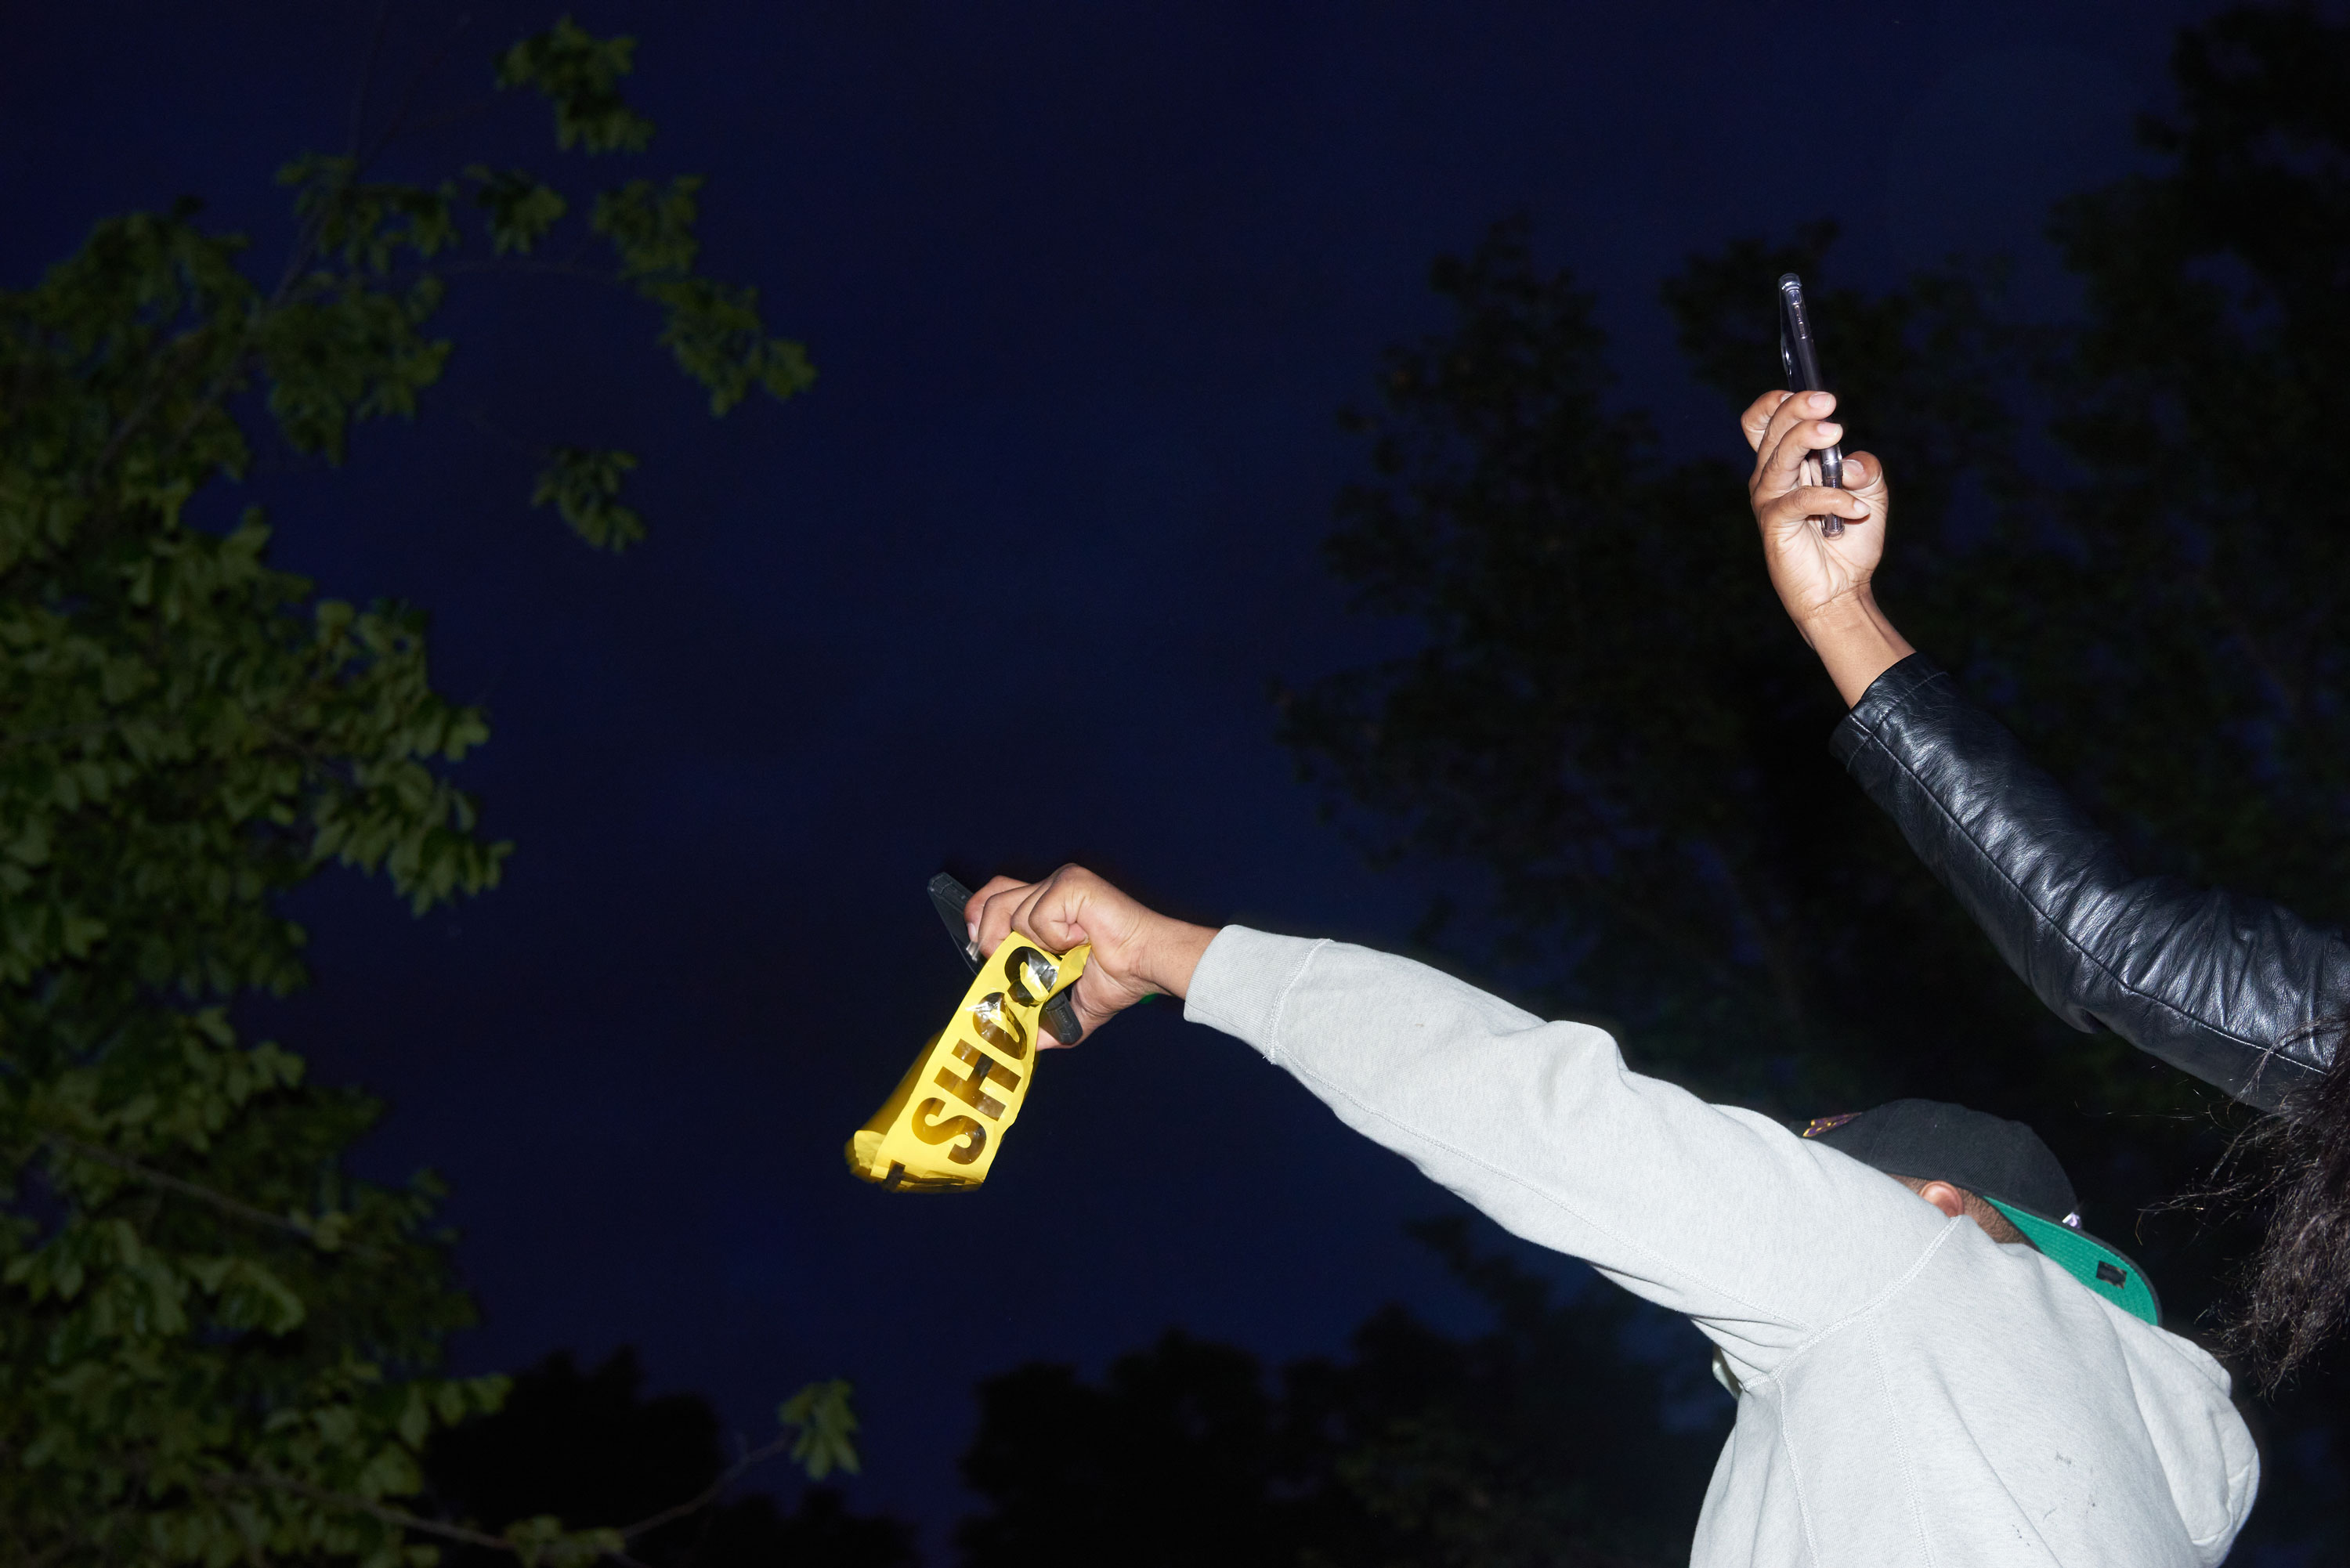 photograph of two protestor arms holding up smartphones in the night